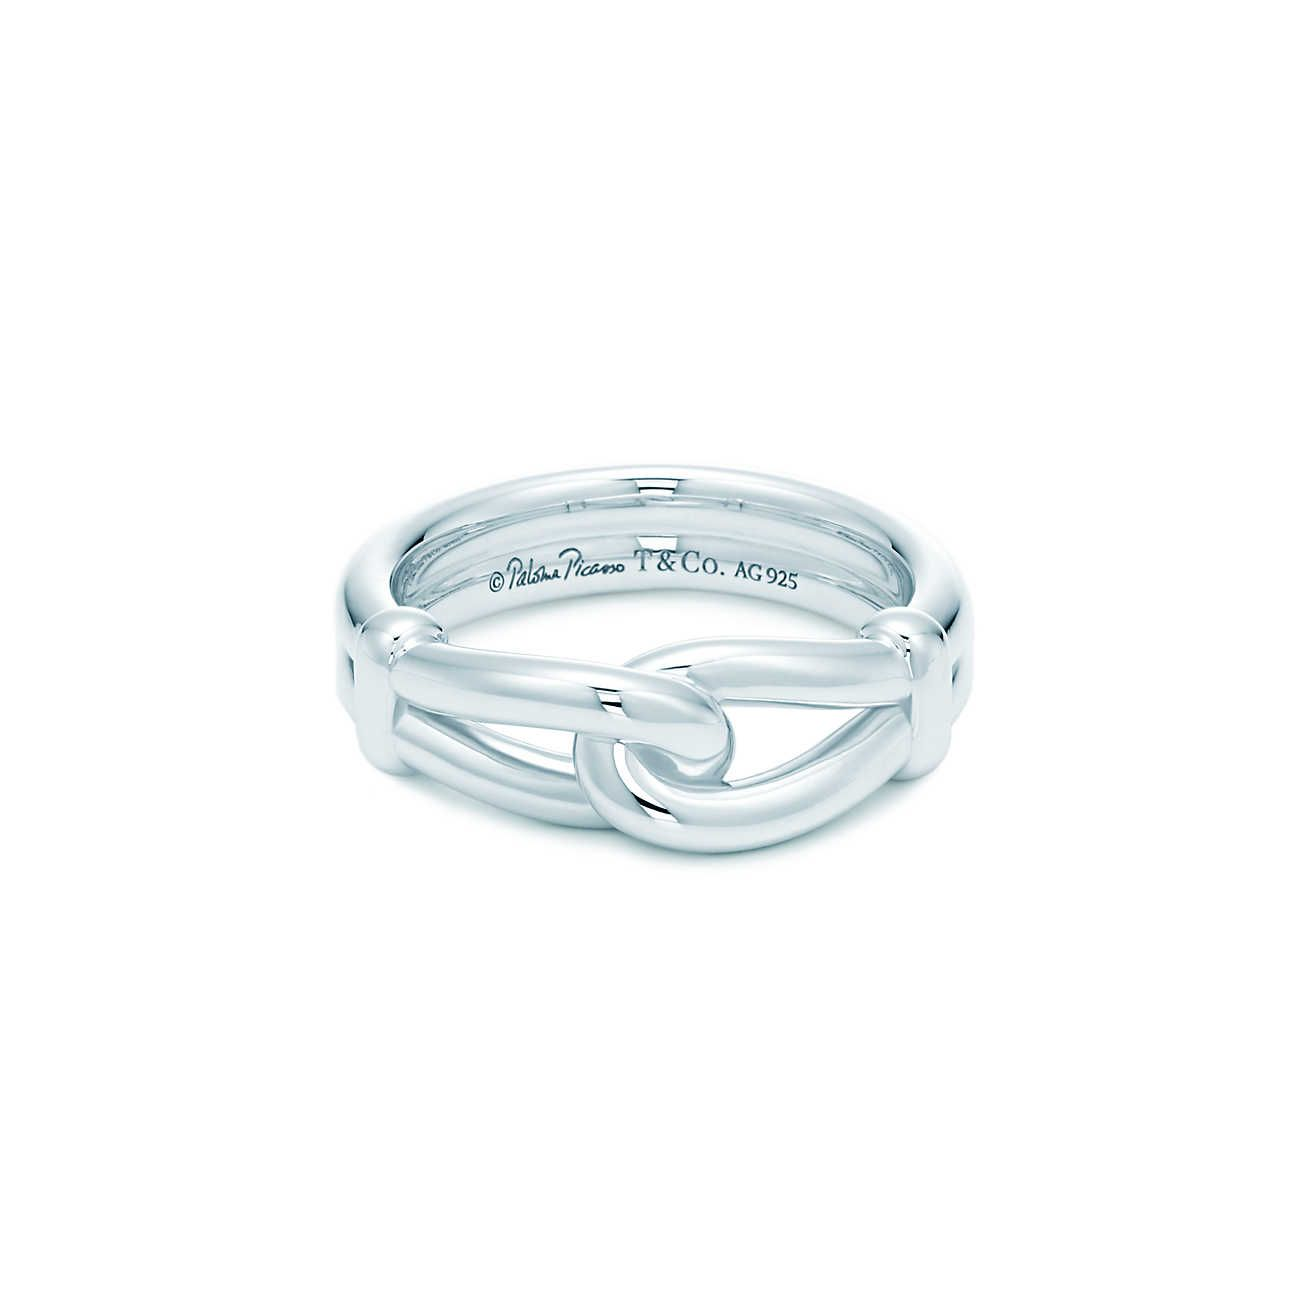 Paloma Picasso® Knot ring in sterling silver.